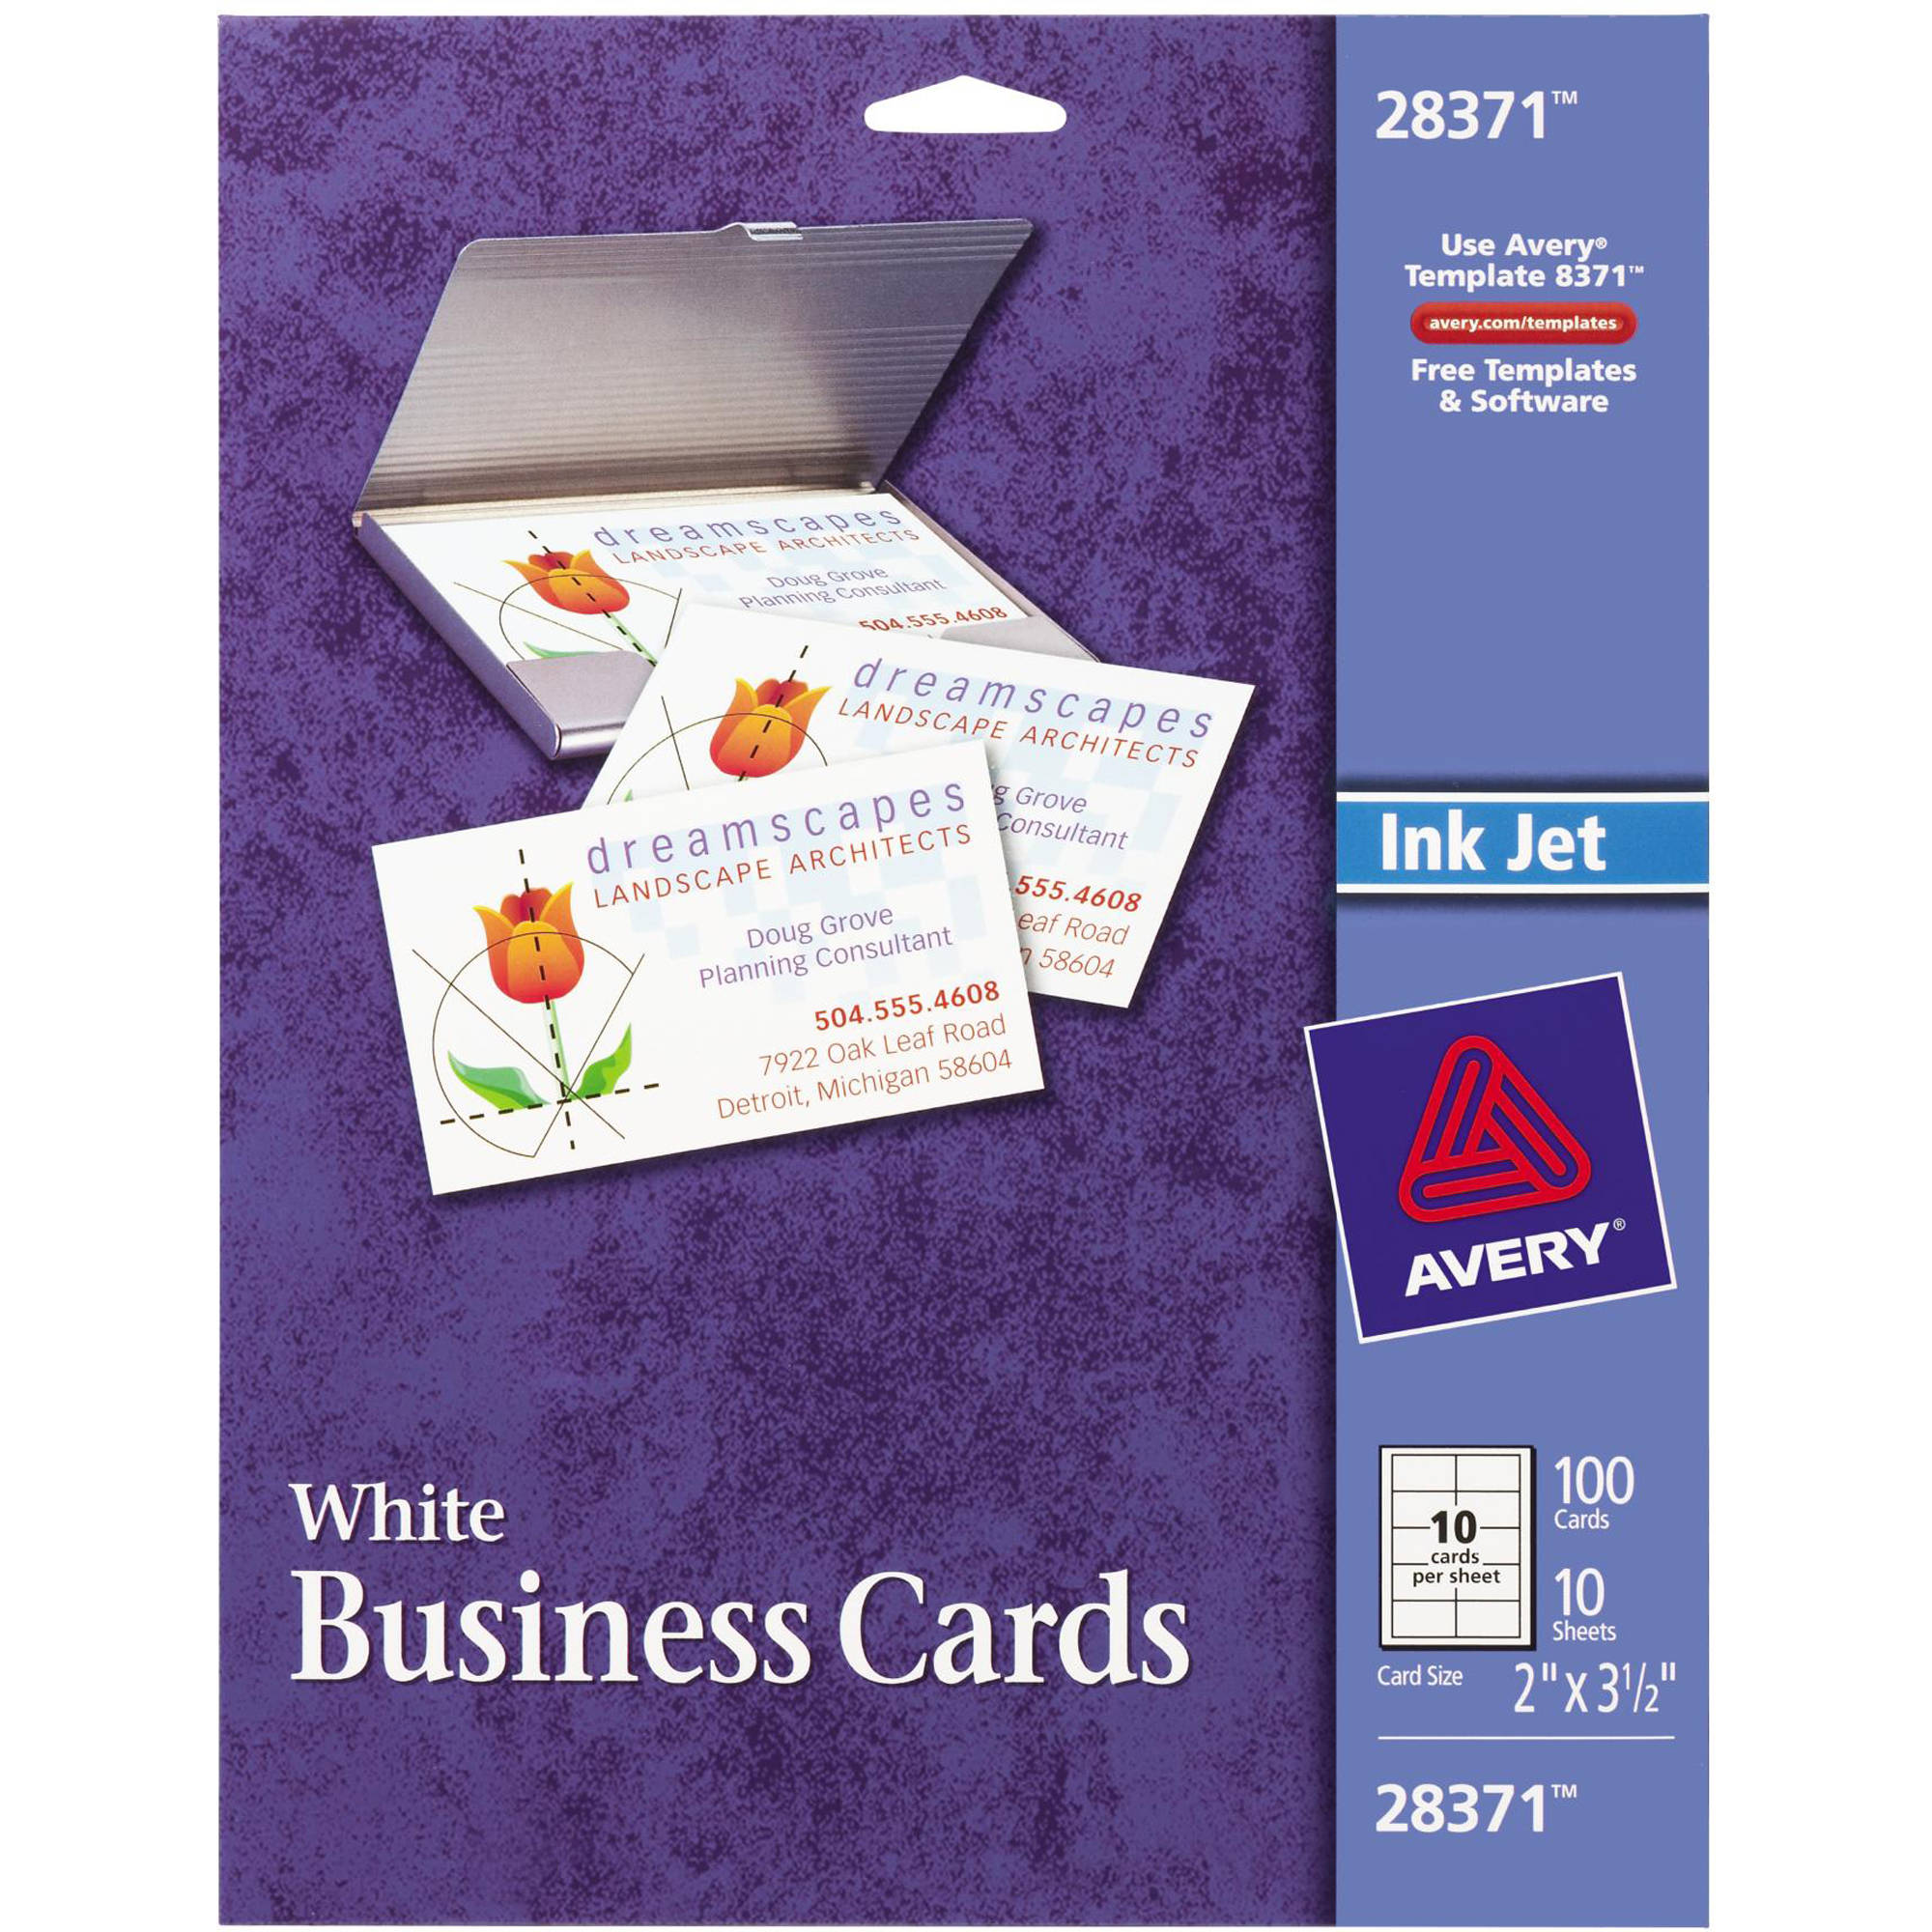 Averyr matte business cards for inkjet printers 28371 pack of averyr matte business cards for inkjet printers 28371 pack of 100 walmart magicingreecefo Choice Image